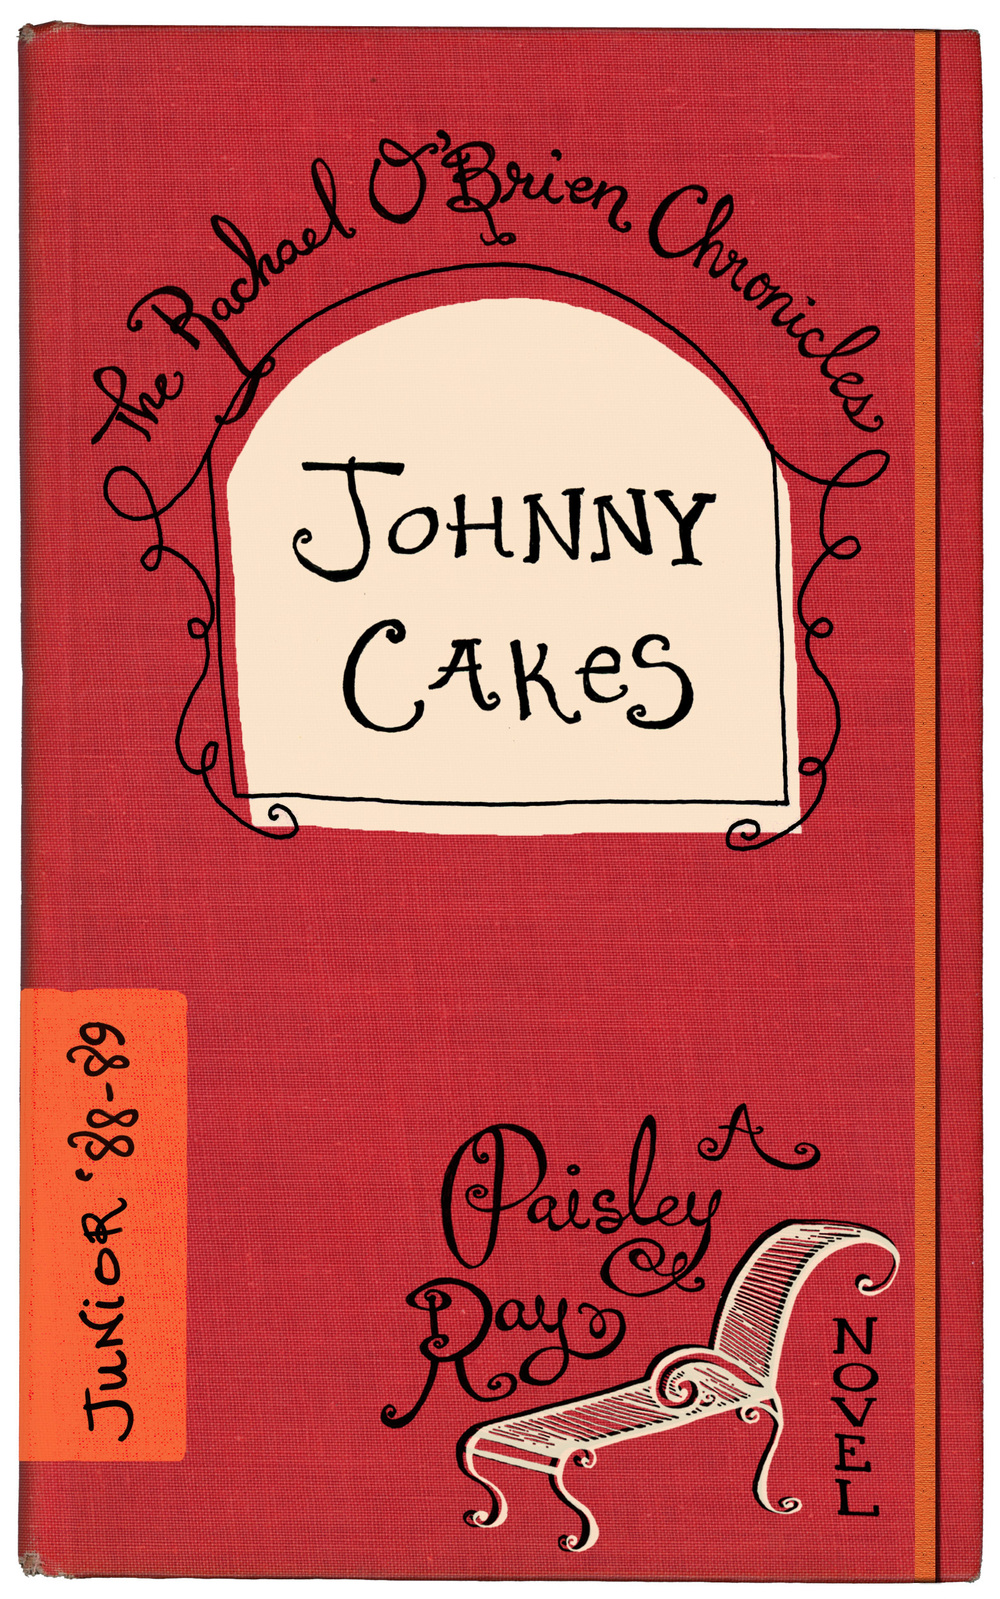 Johnny Cakes mystery book